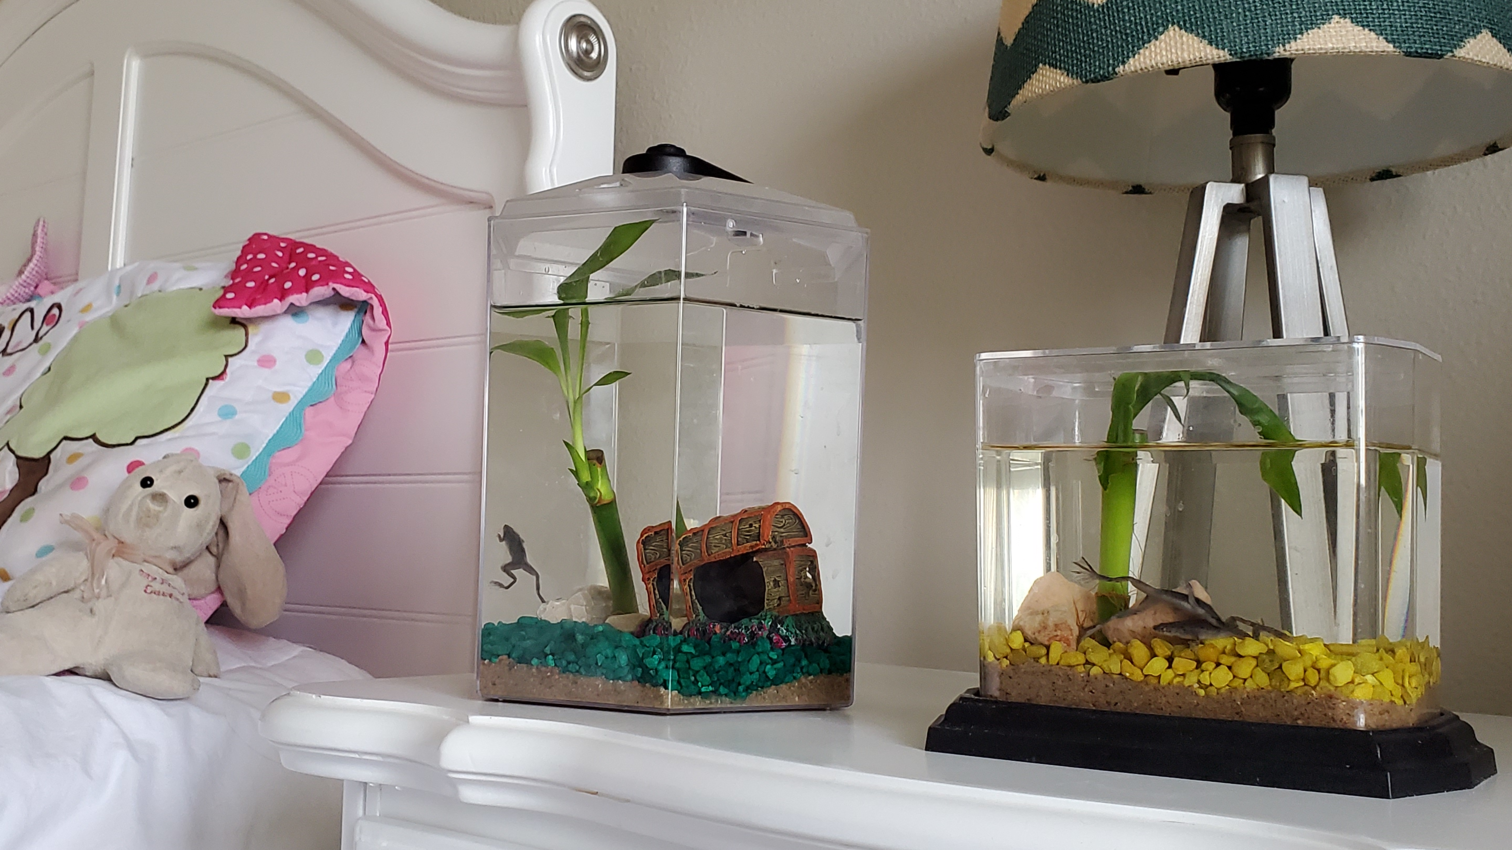 Froggy's Lair Makers of the Froggy Biosphere homes with African Dwarf Frogs🐸